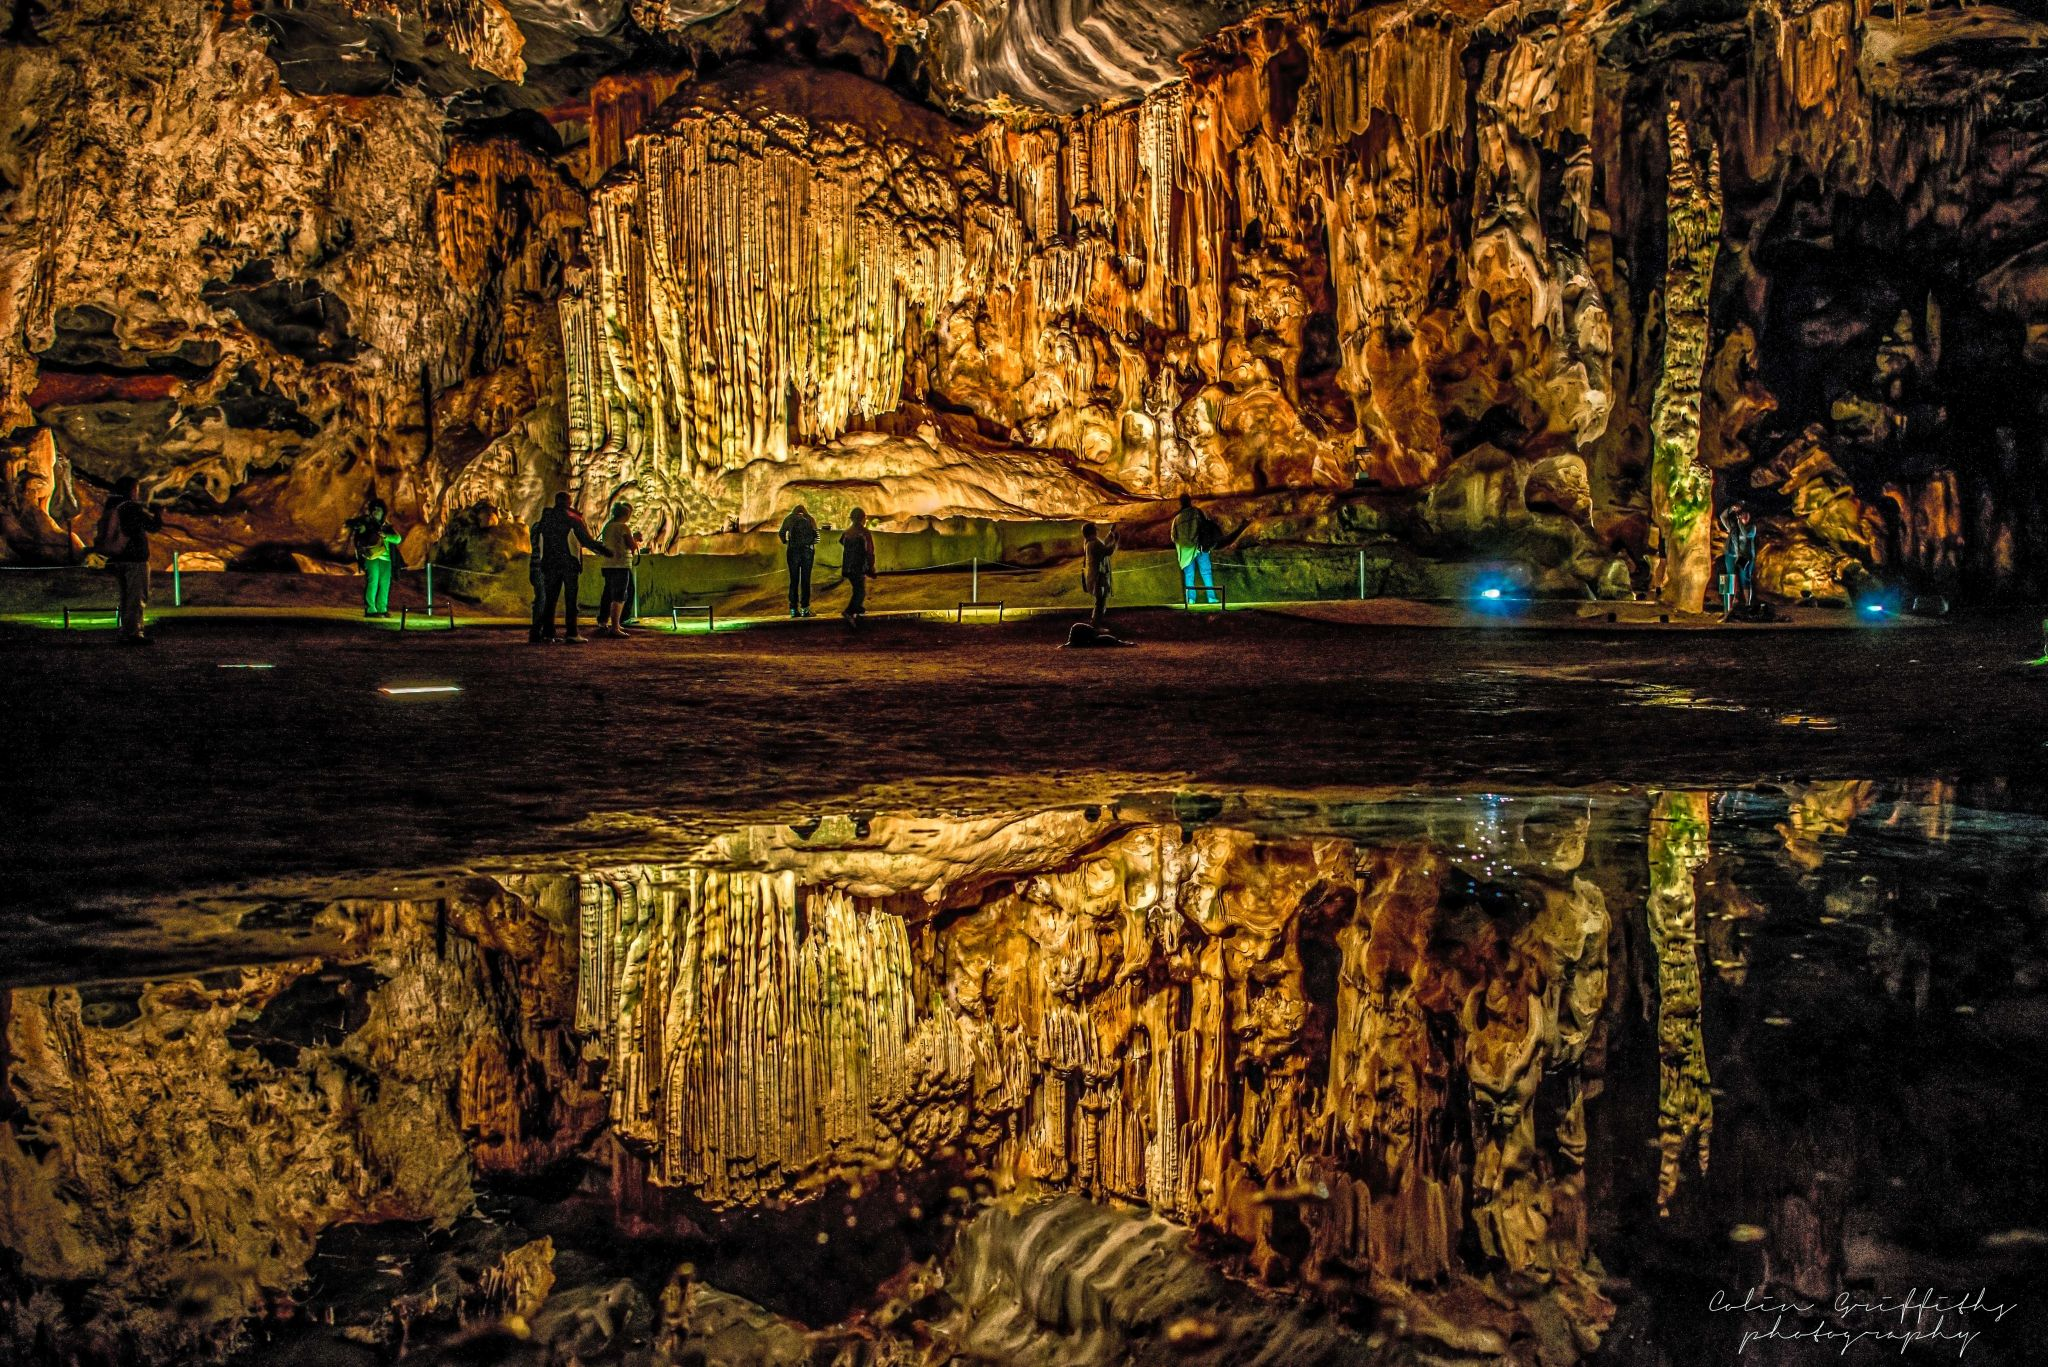 Cango caves,South Africa, South Africa